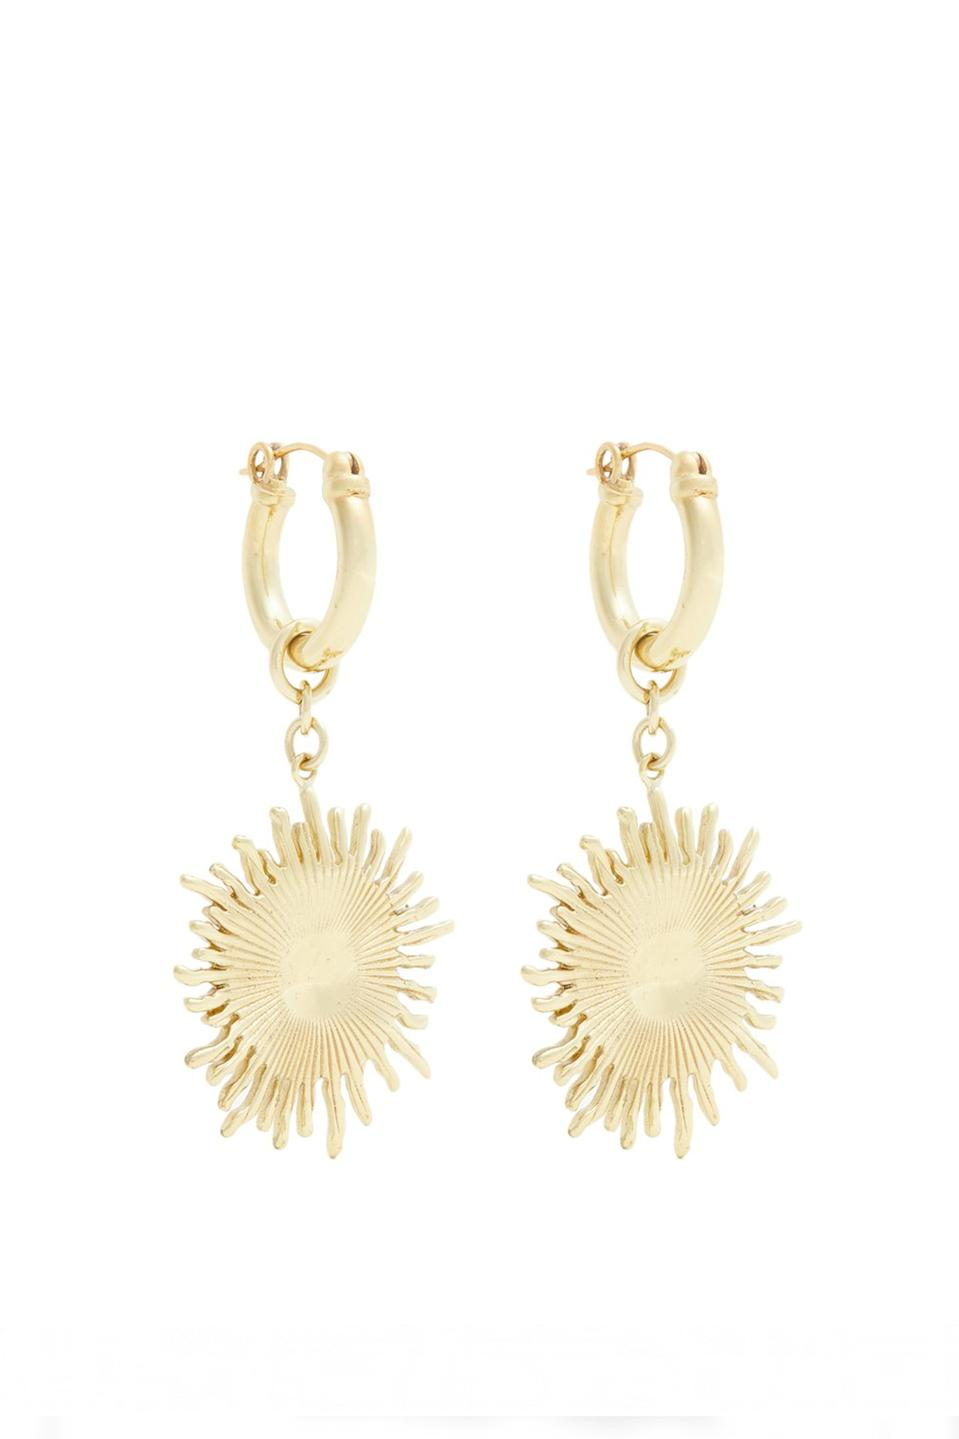 """<p>You can't possibly bag a whole new wardrobe without investing in some discounted bling. Ellery is by far one of the coolest labels on the fashion scene RN and we need to inject a dash of Vitamin D into our look with these sunshine-inspired jewels. <a href=""""https://www.matchesfashion.com/products/Ellery-Scully-small-sun-drop-earrings-1202073"""" rel=""""nofollow noopener"""" target=""""_blank"""" data-ylk=""""slk:Shop now"""" class=""""link rapid-noclick-resp""""><em>Shop now</em></a>. </p>"""